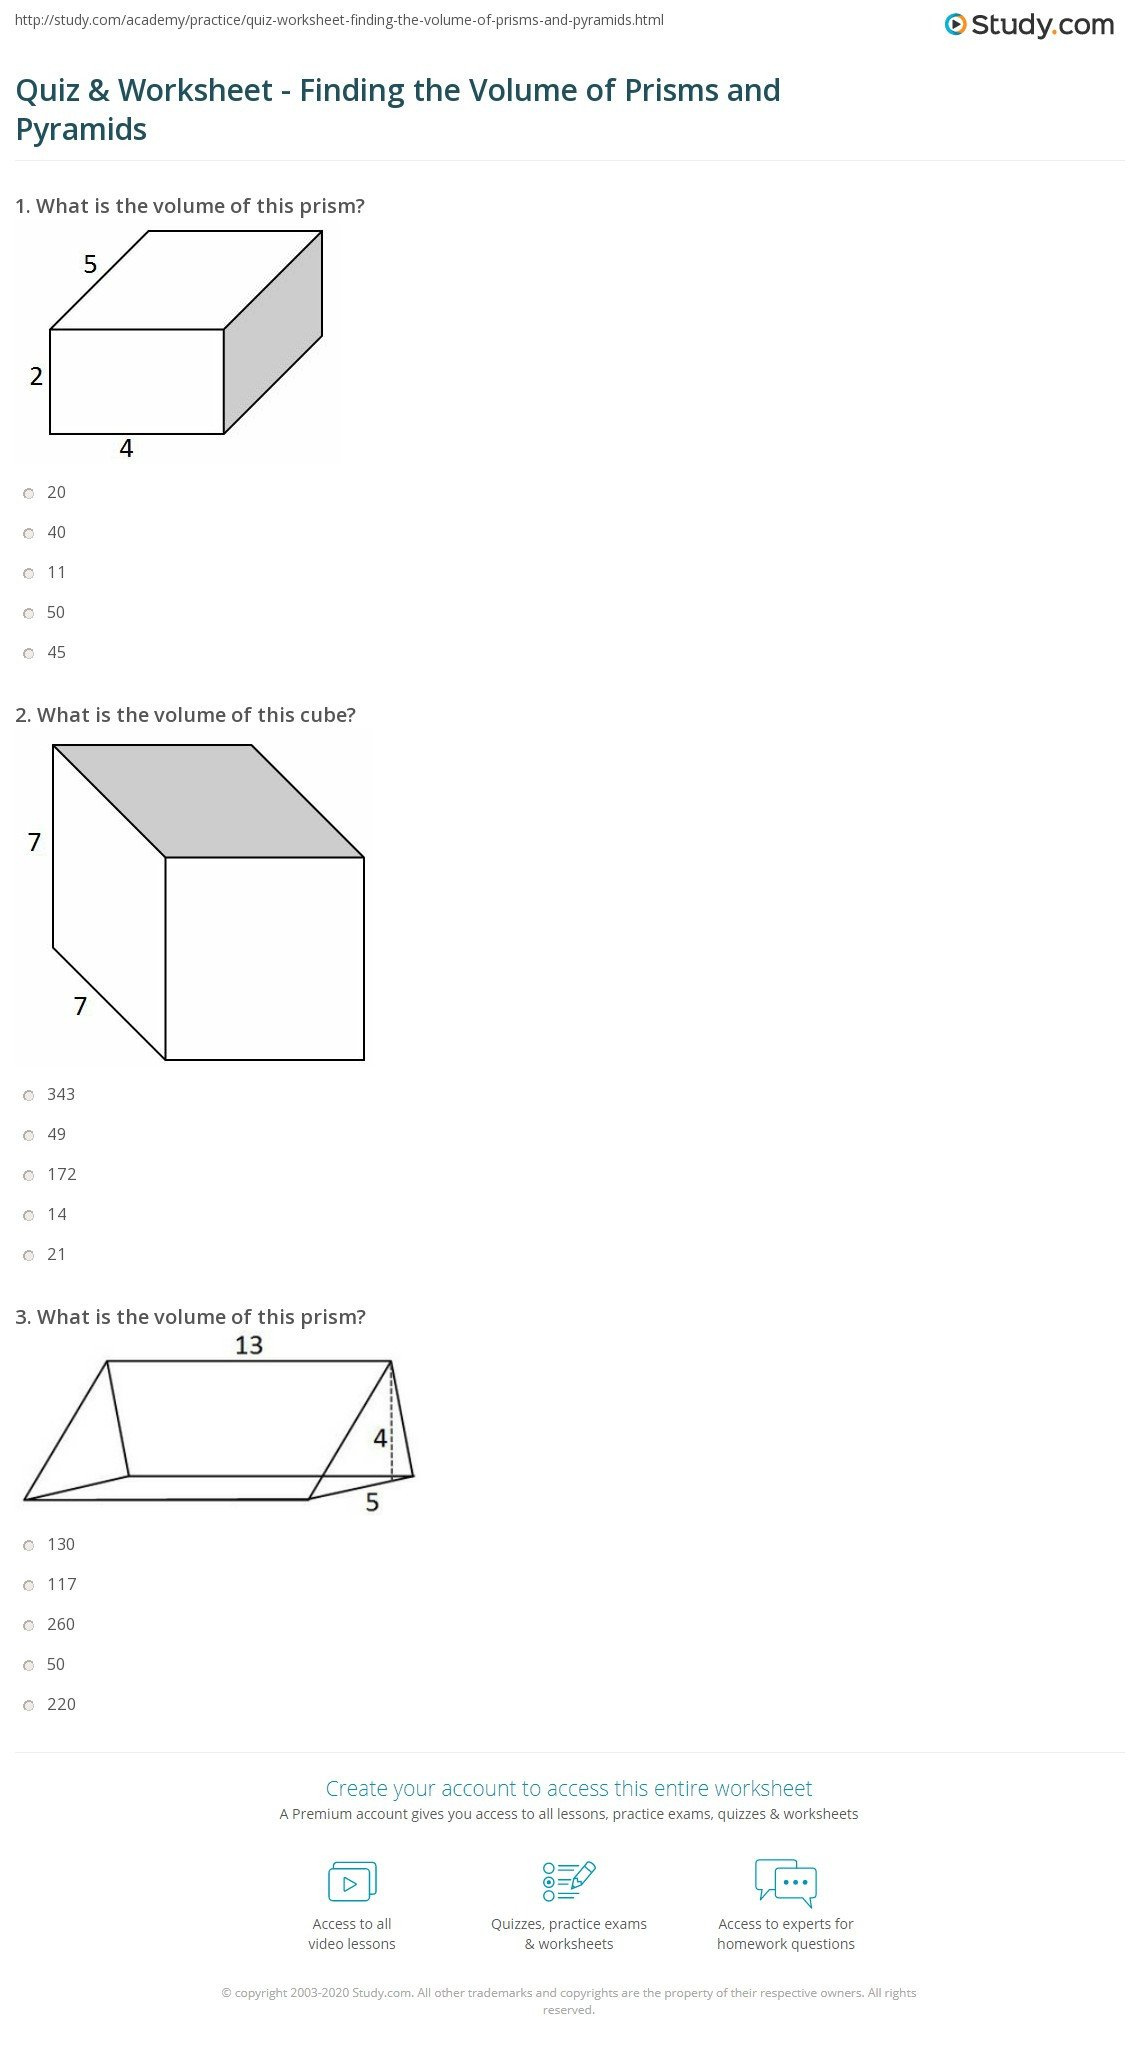 Worksheet Works Calculating Volume Quiz & Worksheet Finding the Volume Of Prisms and Pyramids